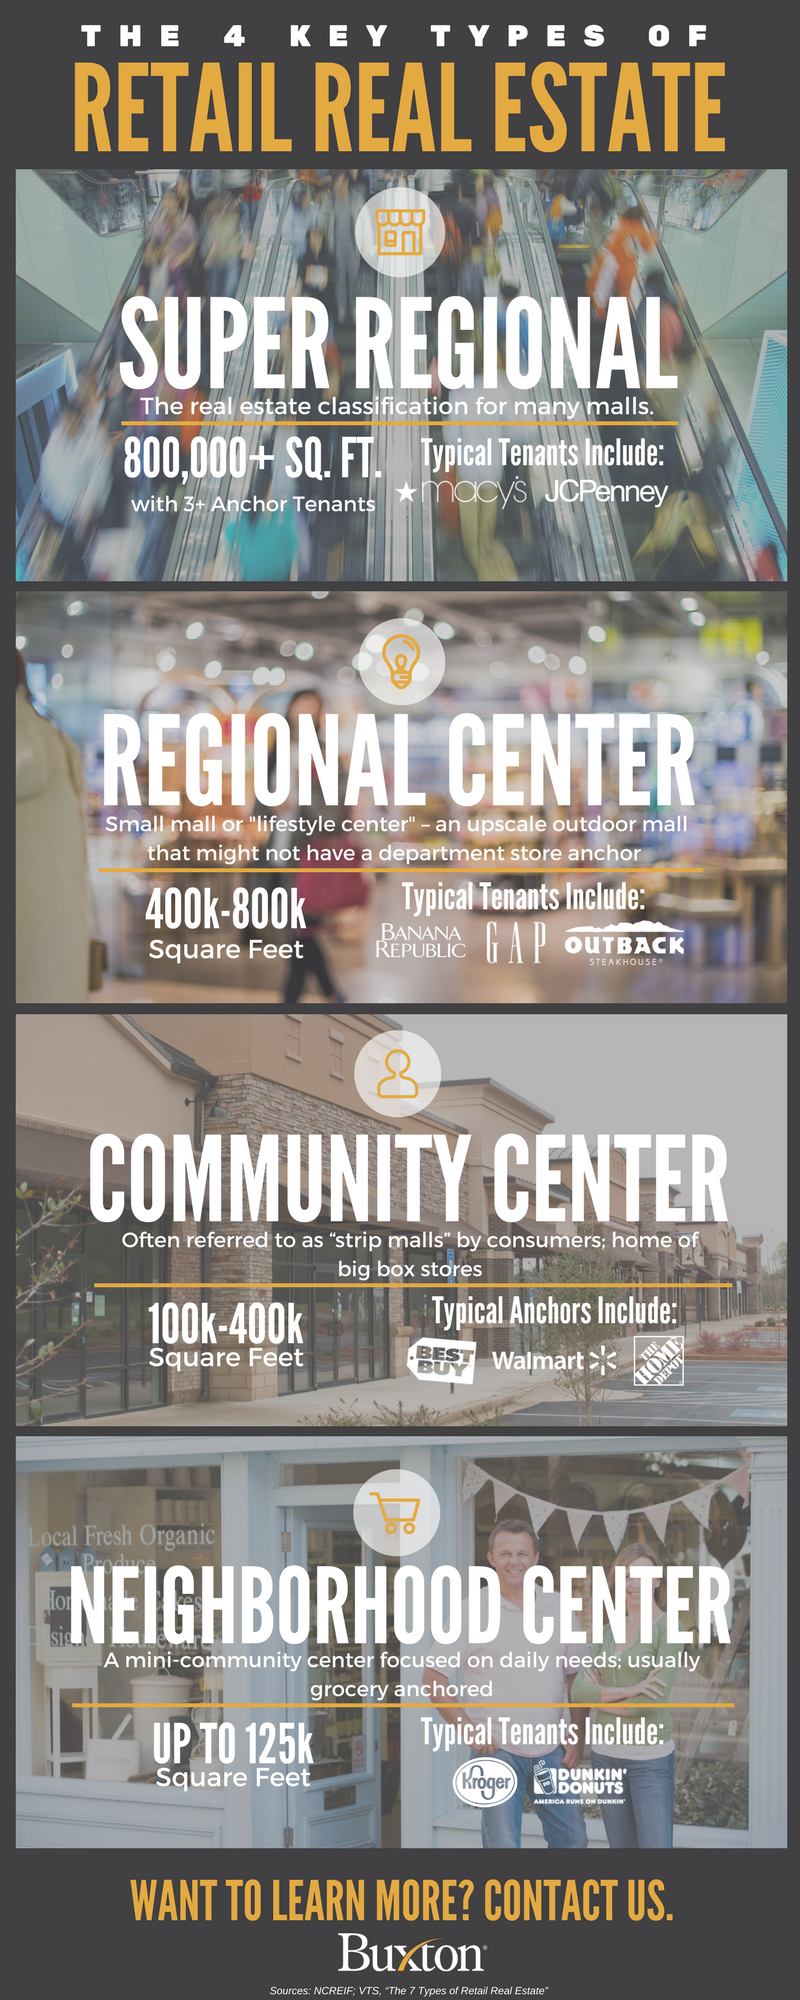 A look at the four key types of retail real estate: Super regional, regional, neighborhood and community centers.